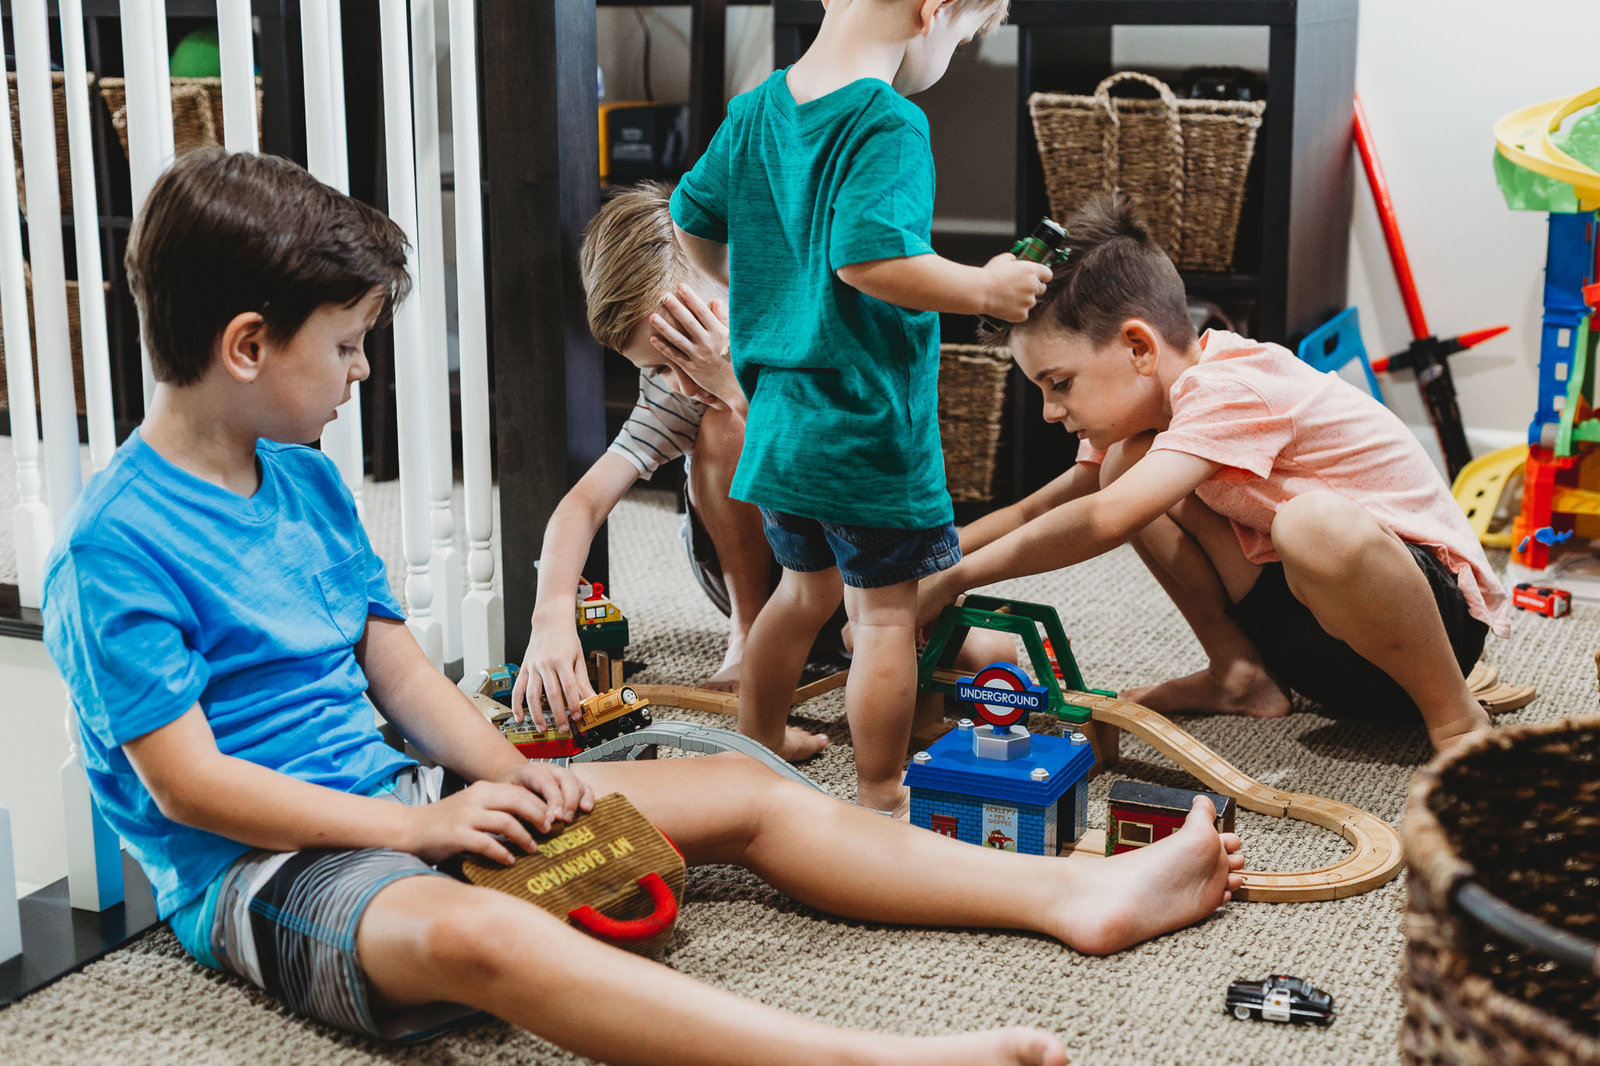 Oahu, Hawaii Lifestyle Photographer - Lifestyle Photography - Brooke Flanagan Photography - Brothers playing together